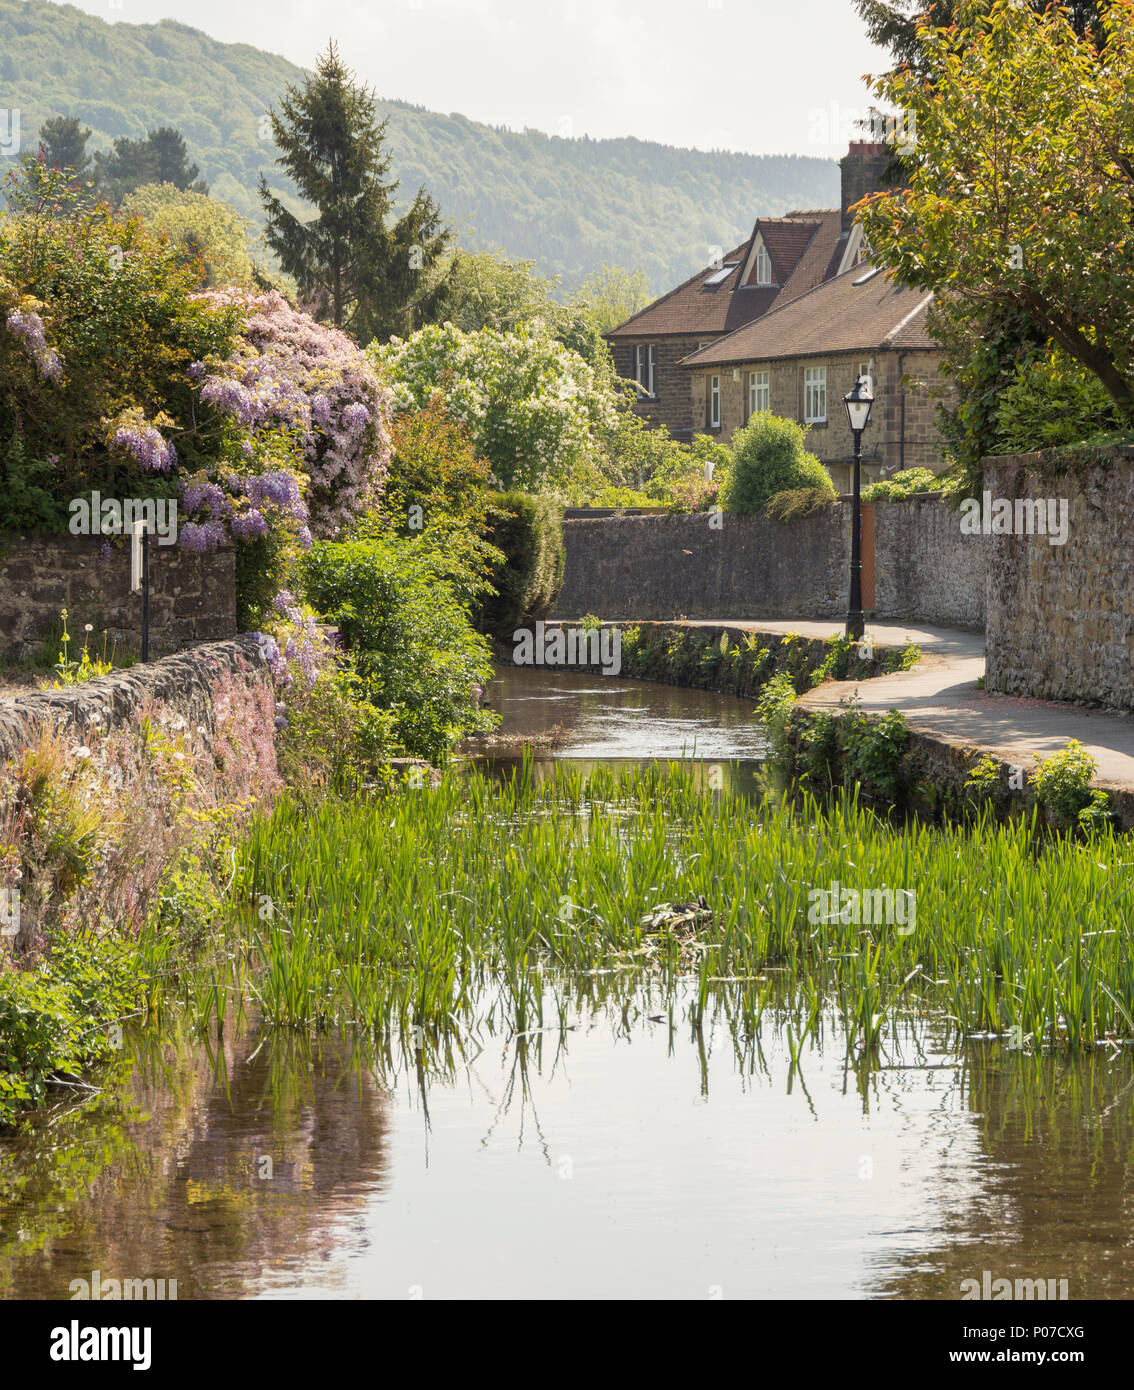 Waterside walk along a tributary of the river Wye in Bakewell, Derbyshire, England - Stock Image